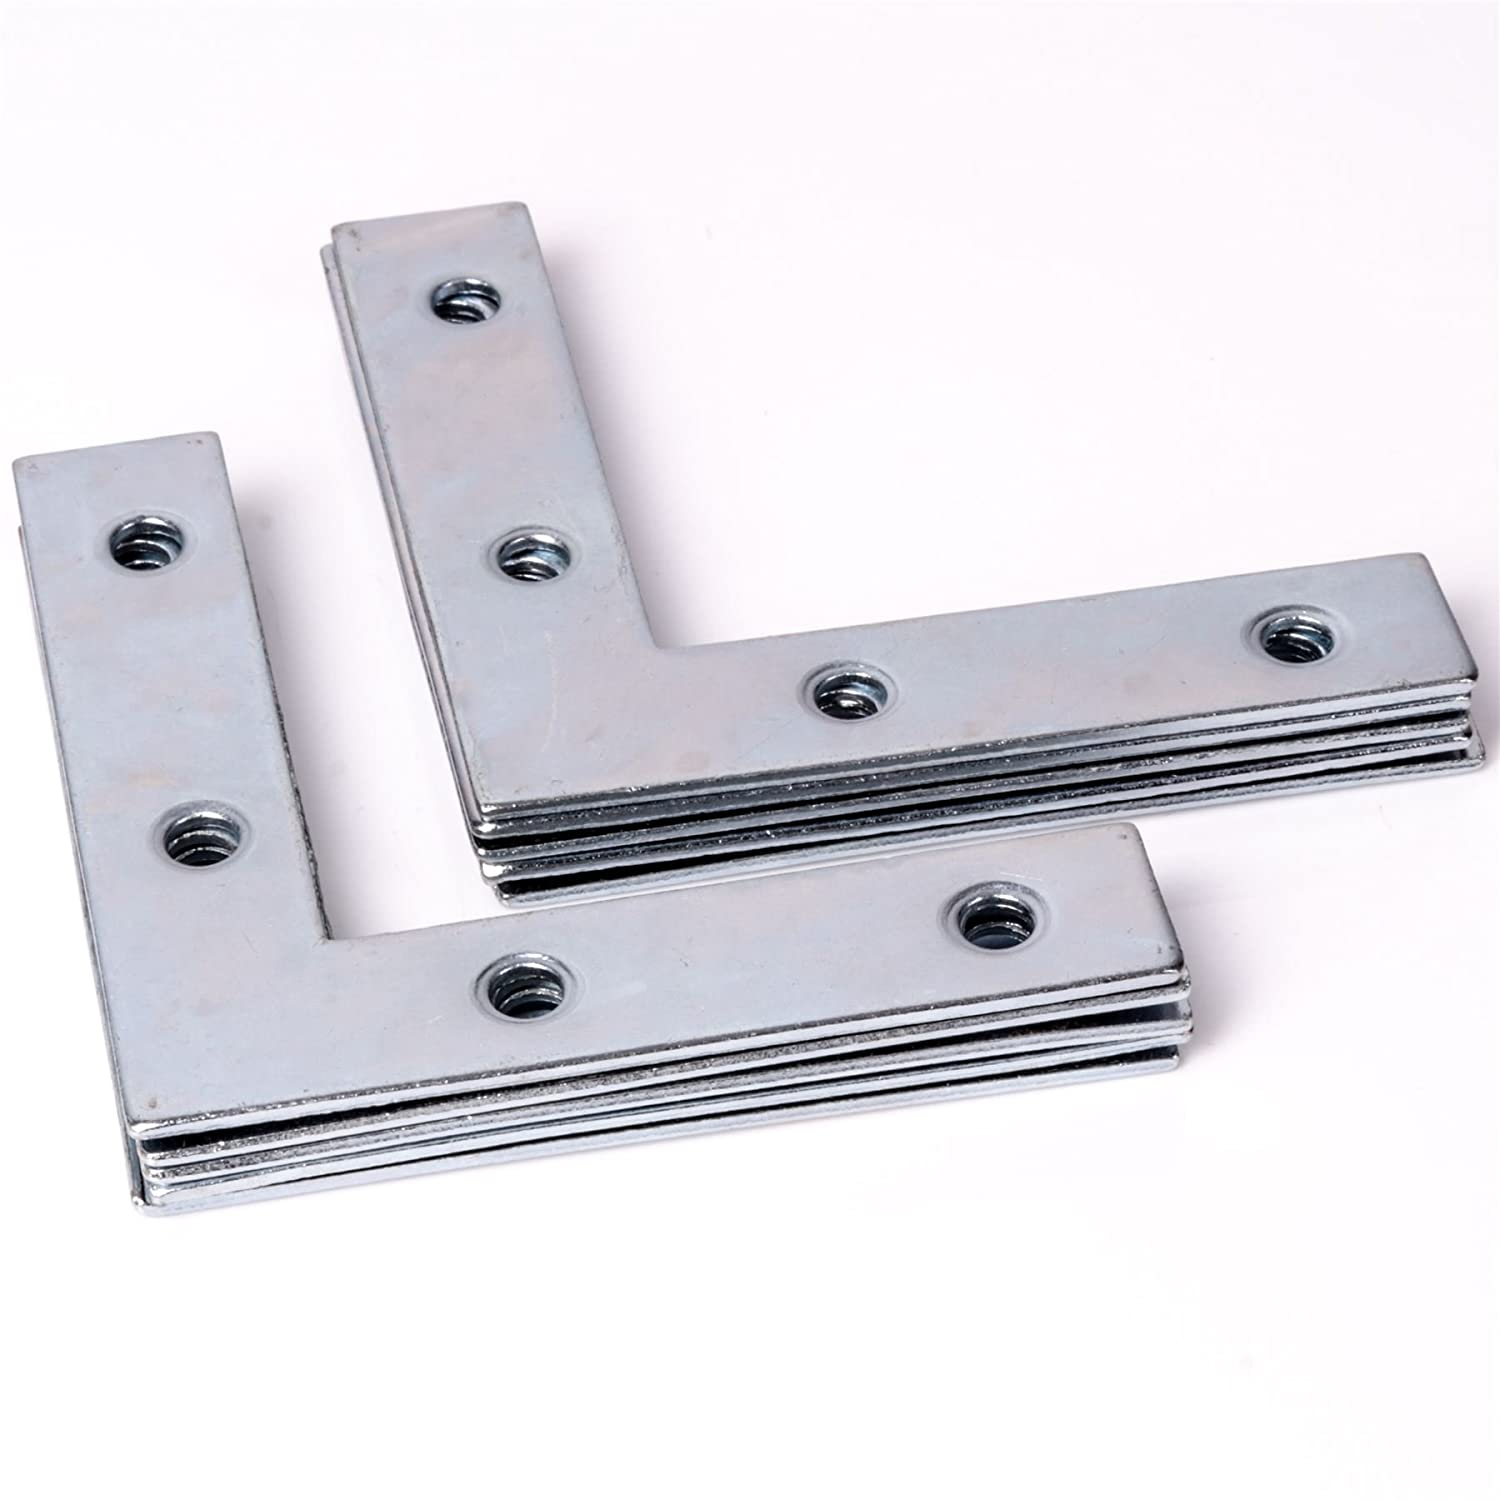 20x Large Right Angle Brackets 75mm Flat Corner Repair Fixing/Joining Brace Plate White Hinge